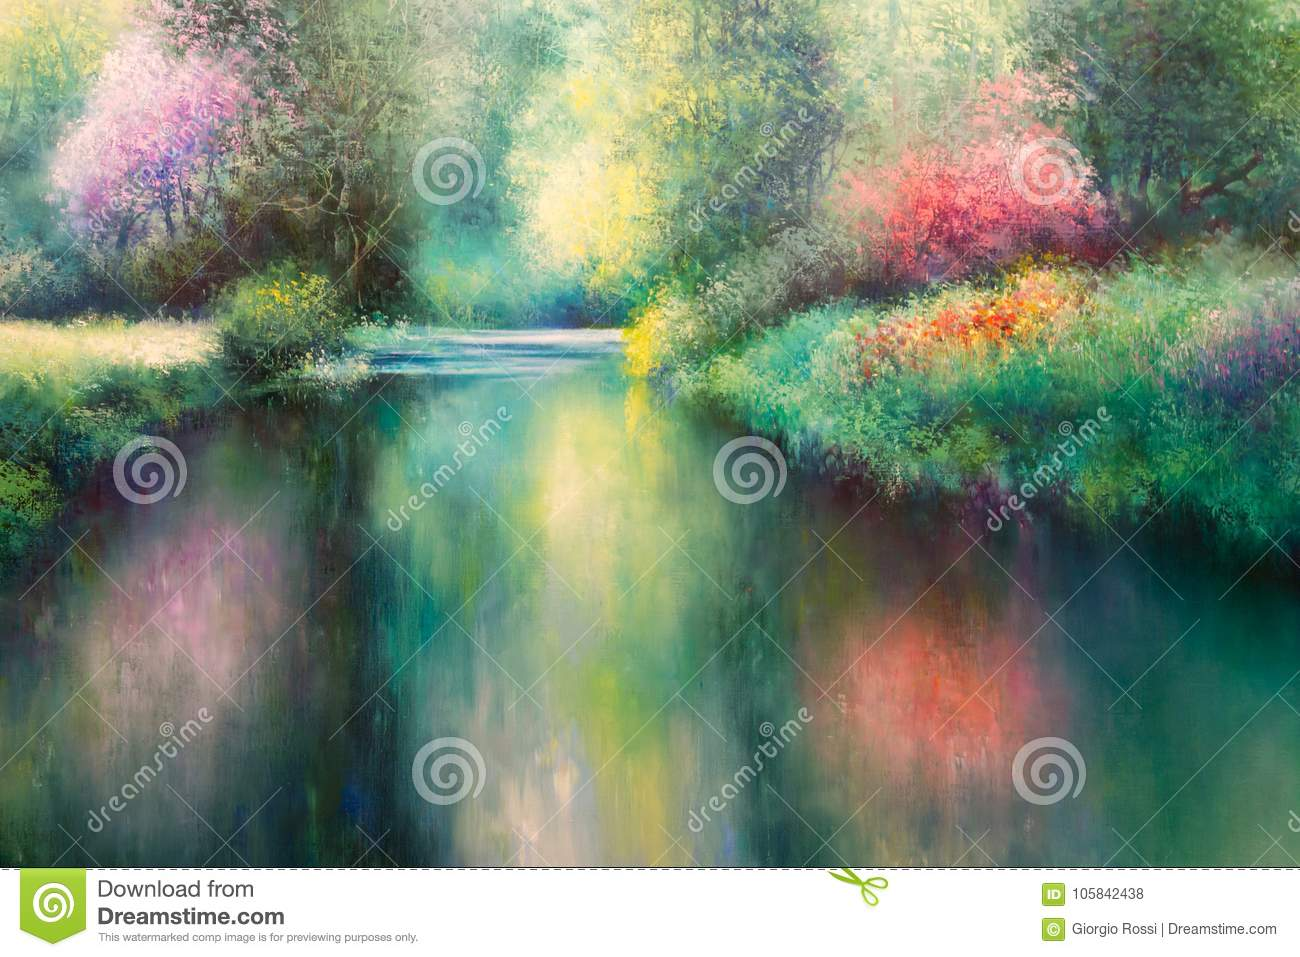 Oil Canvas Painting: Spring Meadow with Coloful Nature, River and Trees